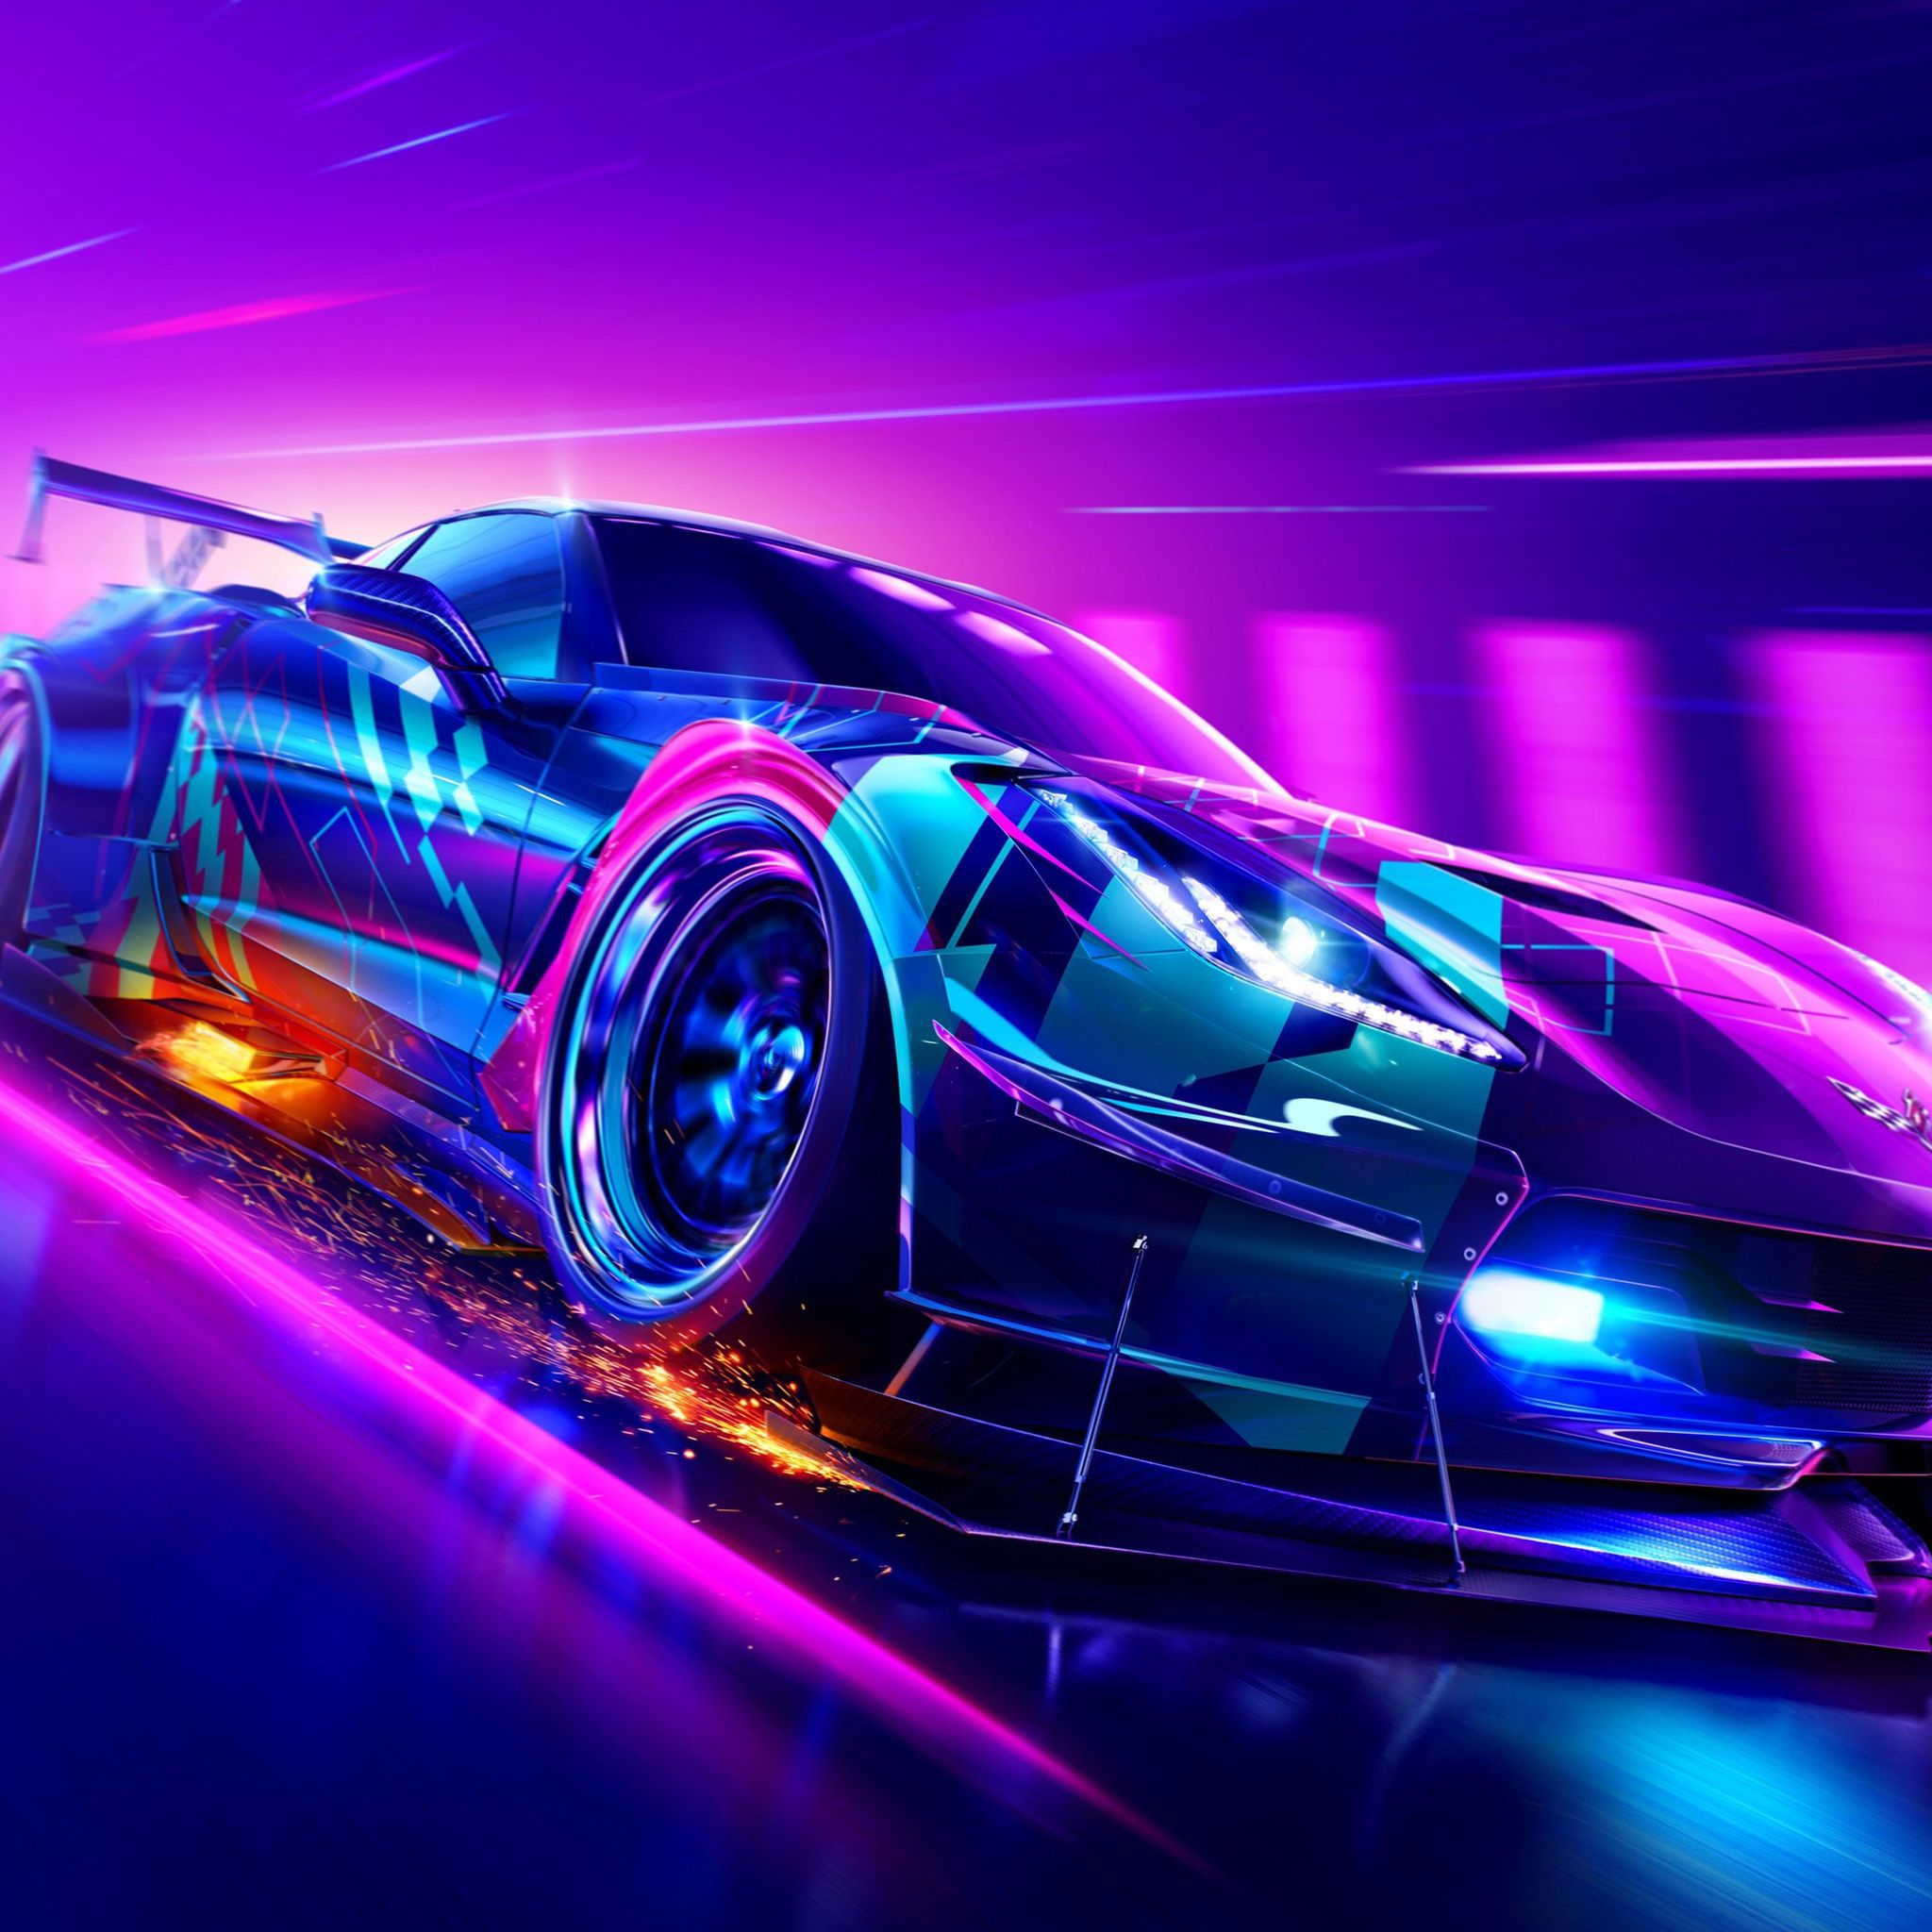 4k wallpapers of neon for free download. Purple Neon Car Wallpapers Top Free Purple Neon Car Backgrounds Wallpaperaccess